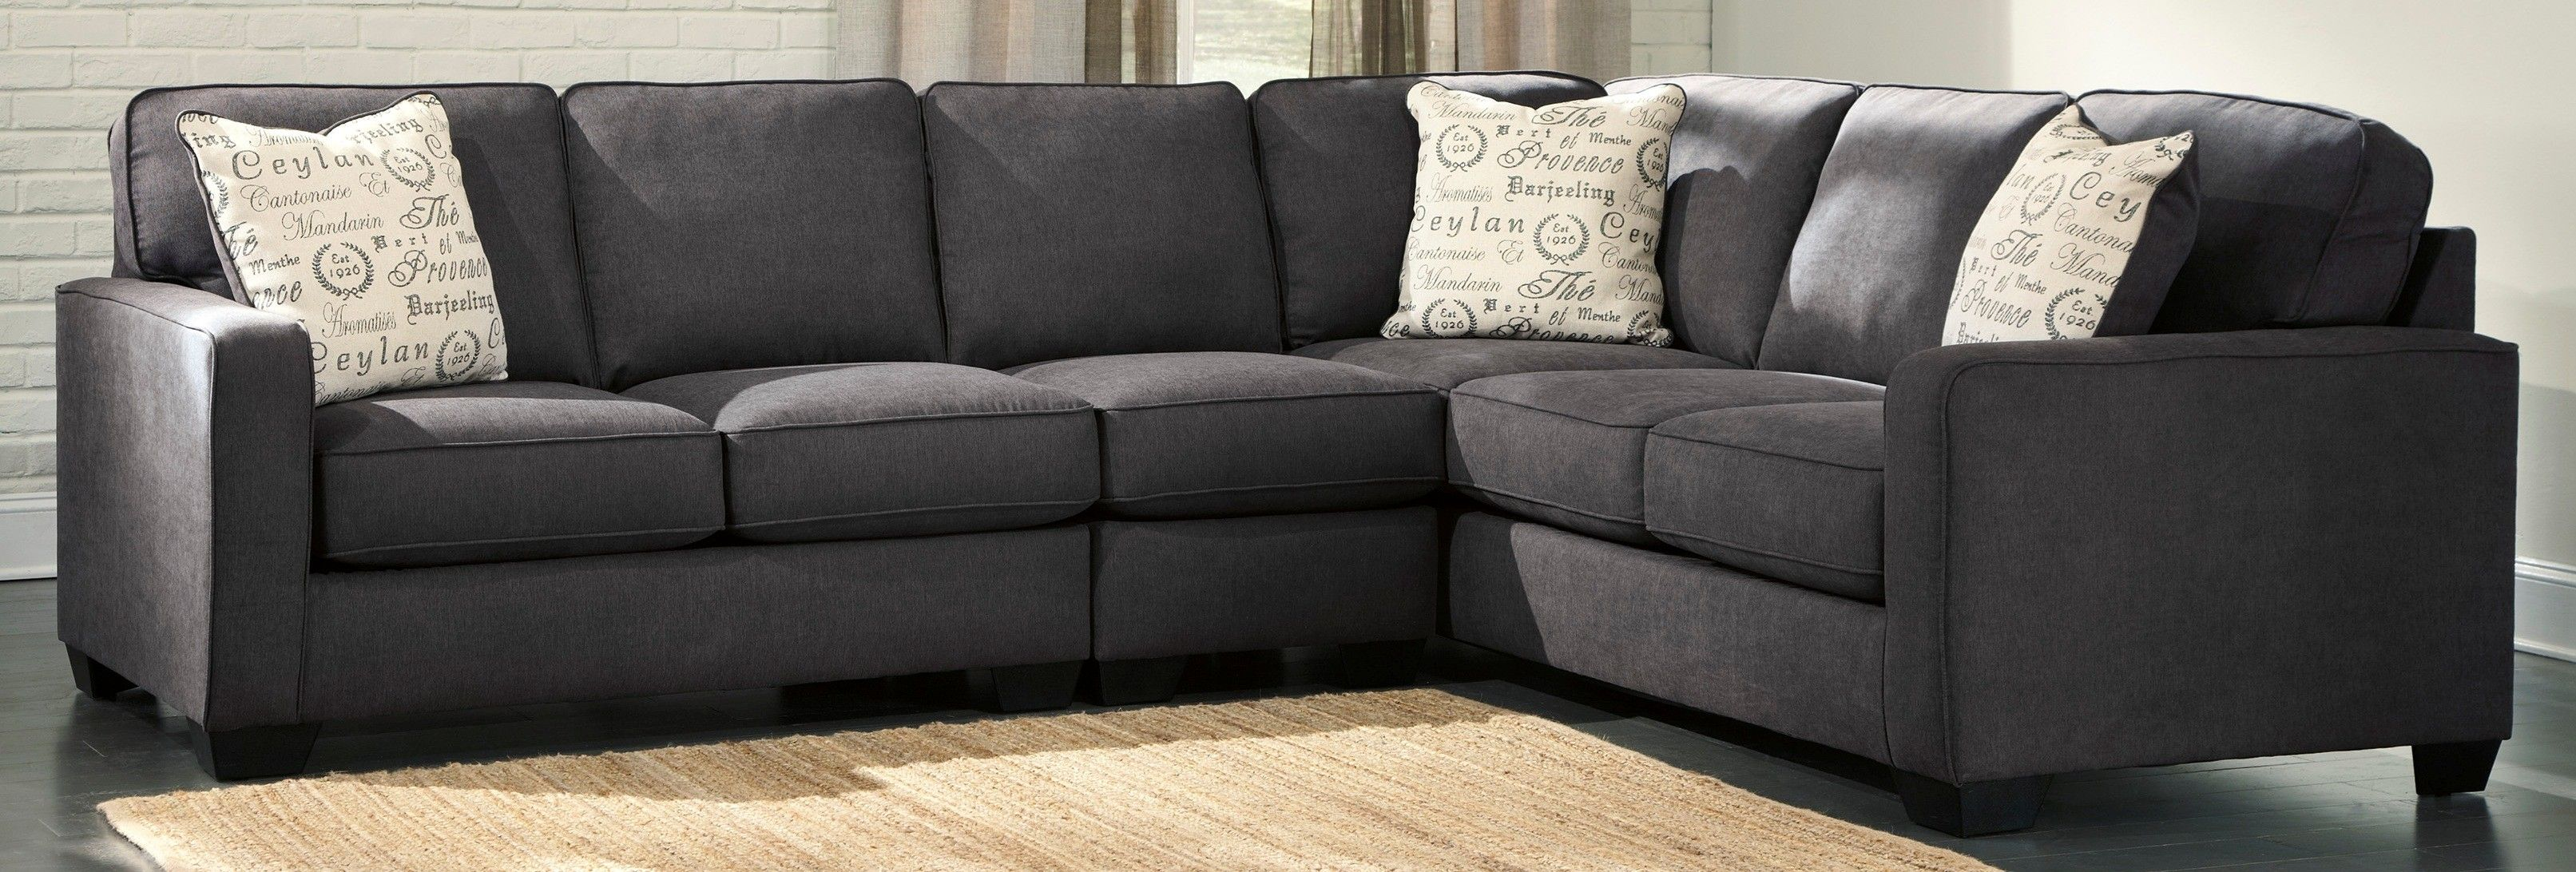 Ashley Furniture Modern Sofa Costco Canada Cover Sofas Prices Beds Design Glamorous